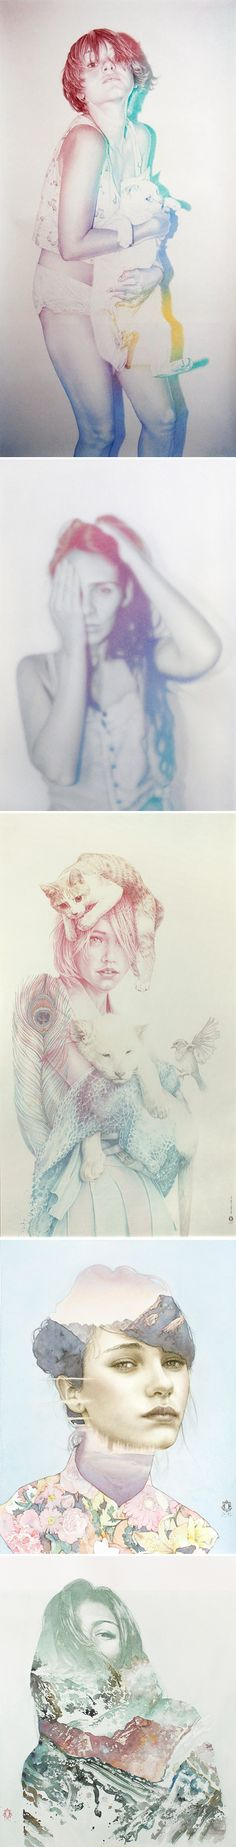 Spanish born, London-based artist Oriol Angrill Jordà. The first three pieces above were done using only colored pencils. The final two pieces are colored pencil and watercolor.